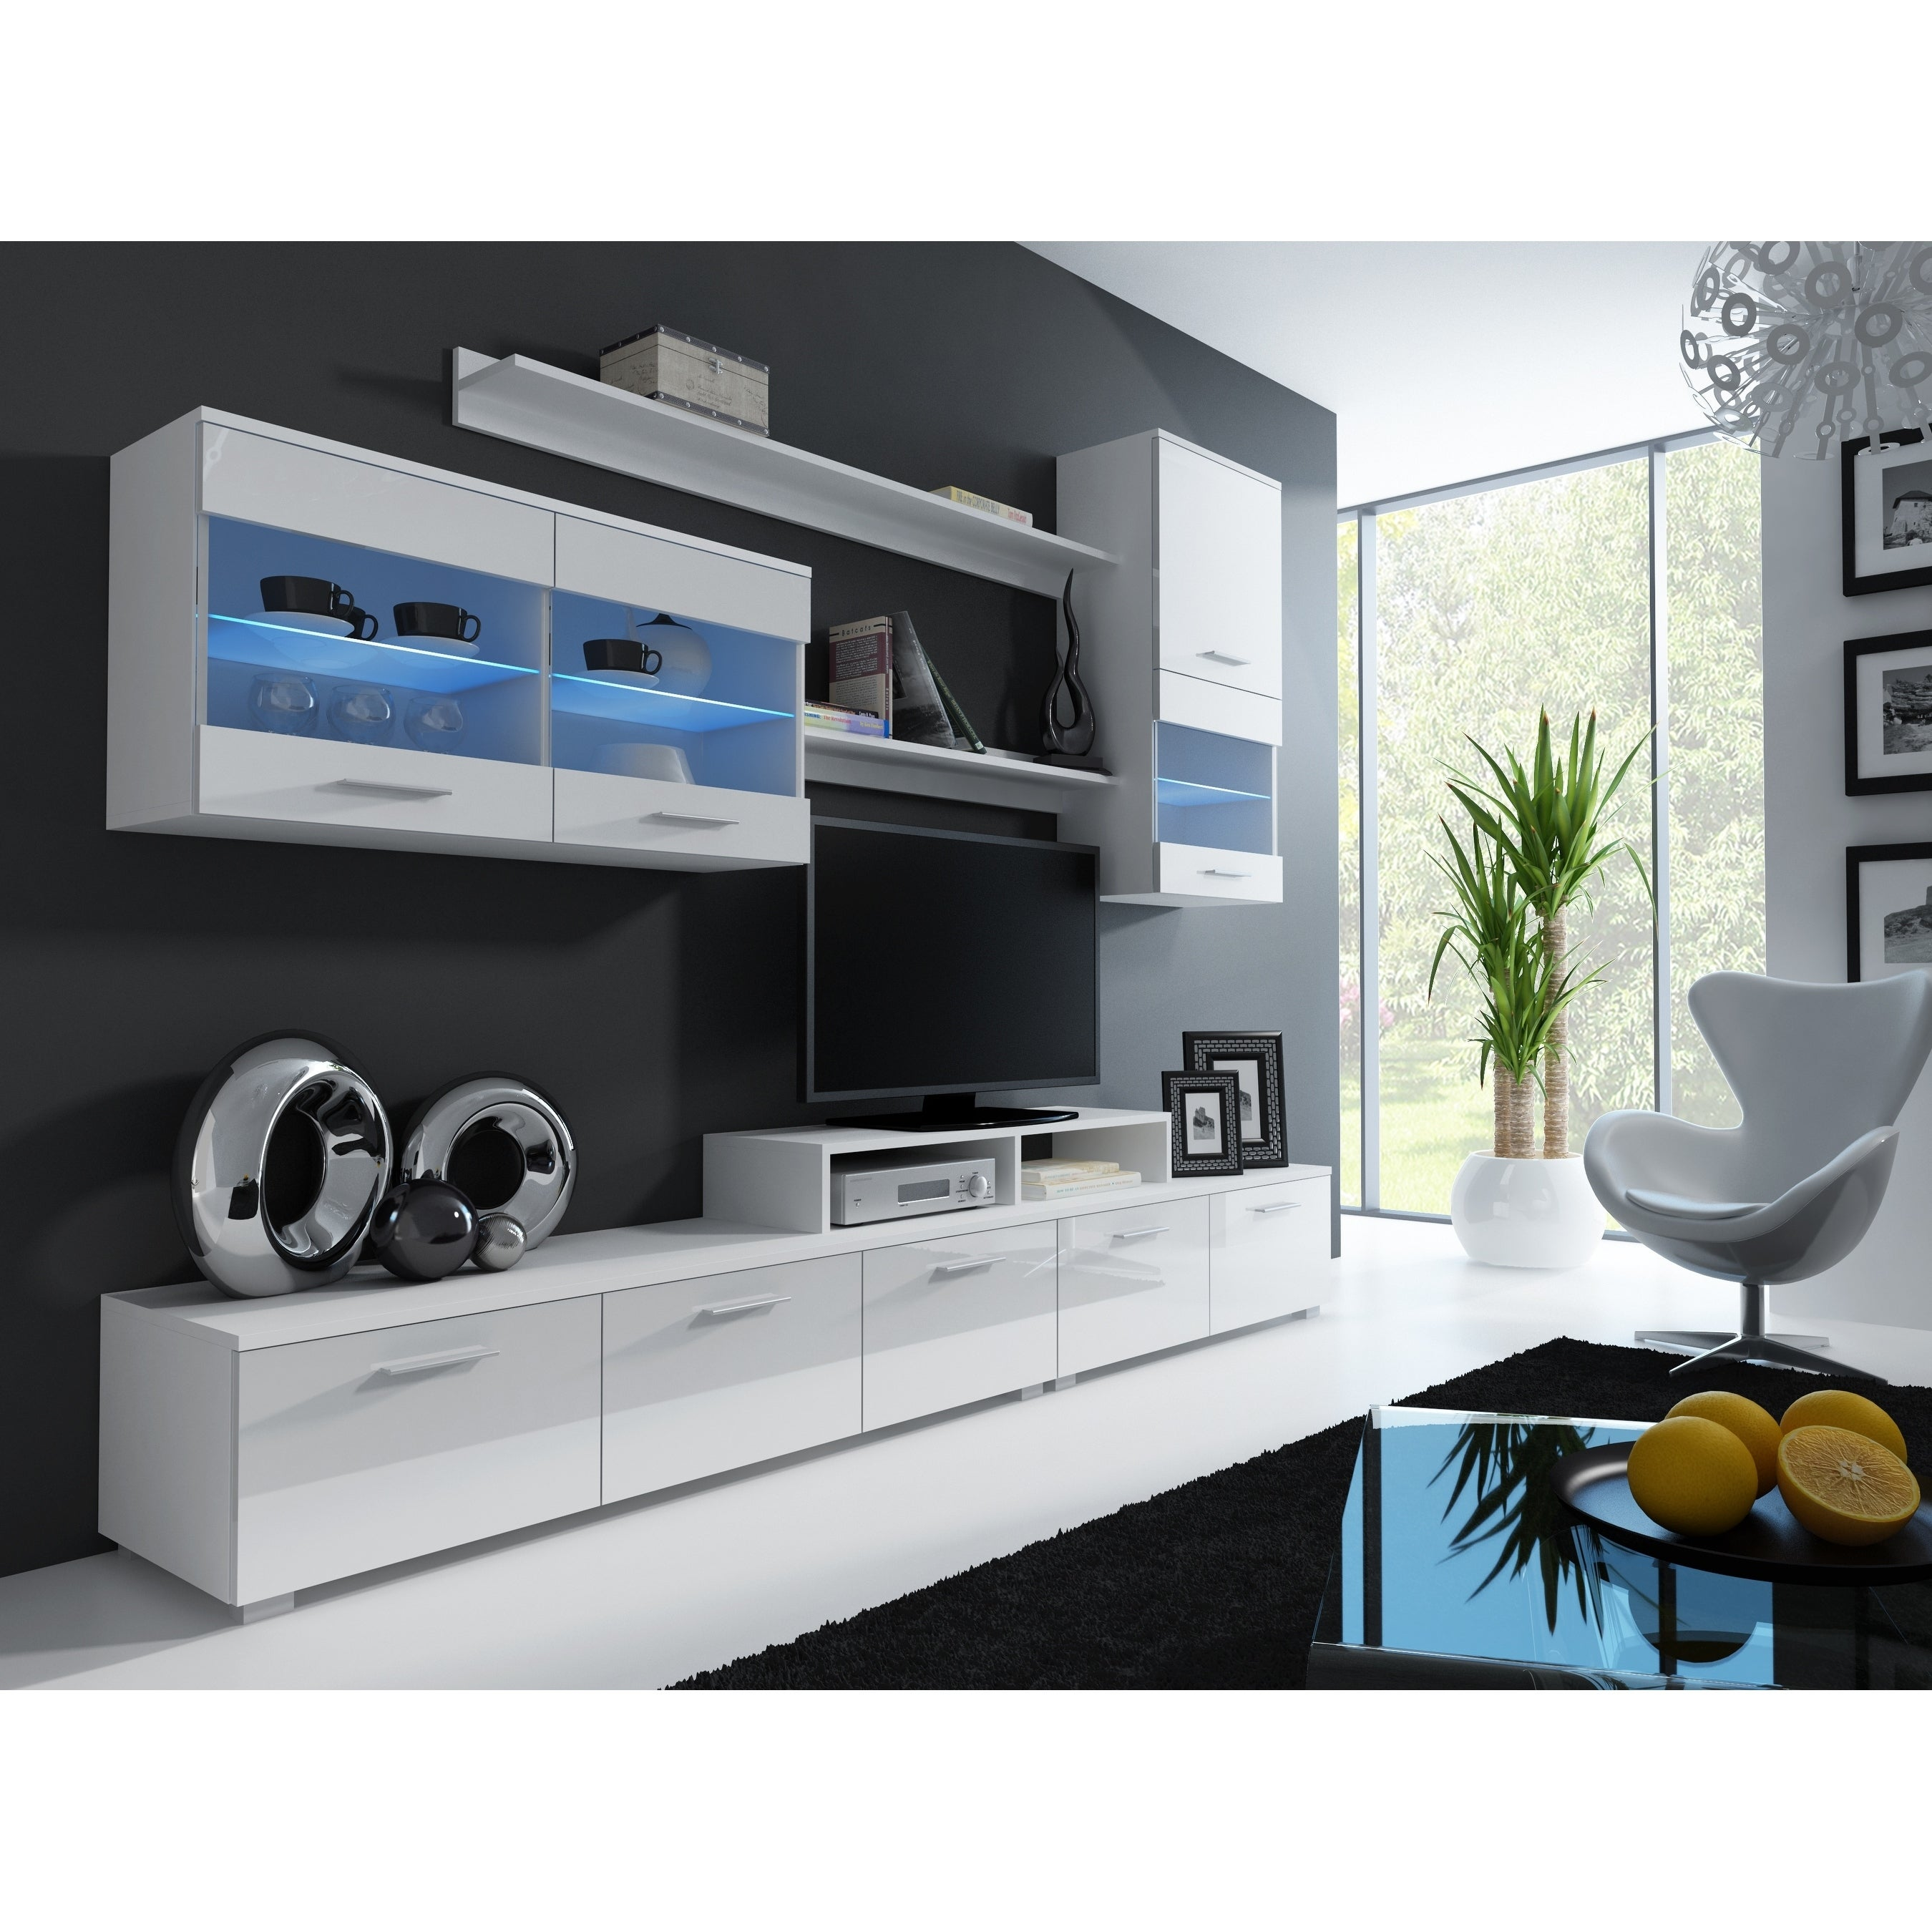 Paris Modern Entertainment Center Wall Unit With Led Lights Overstock 26037054